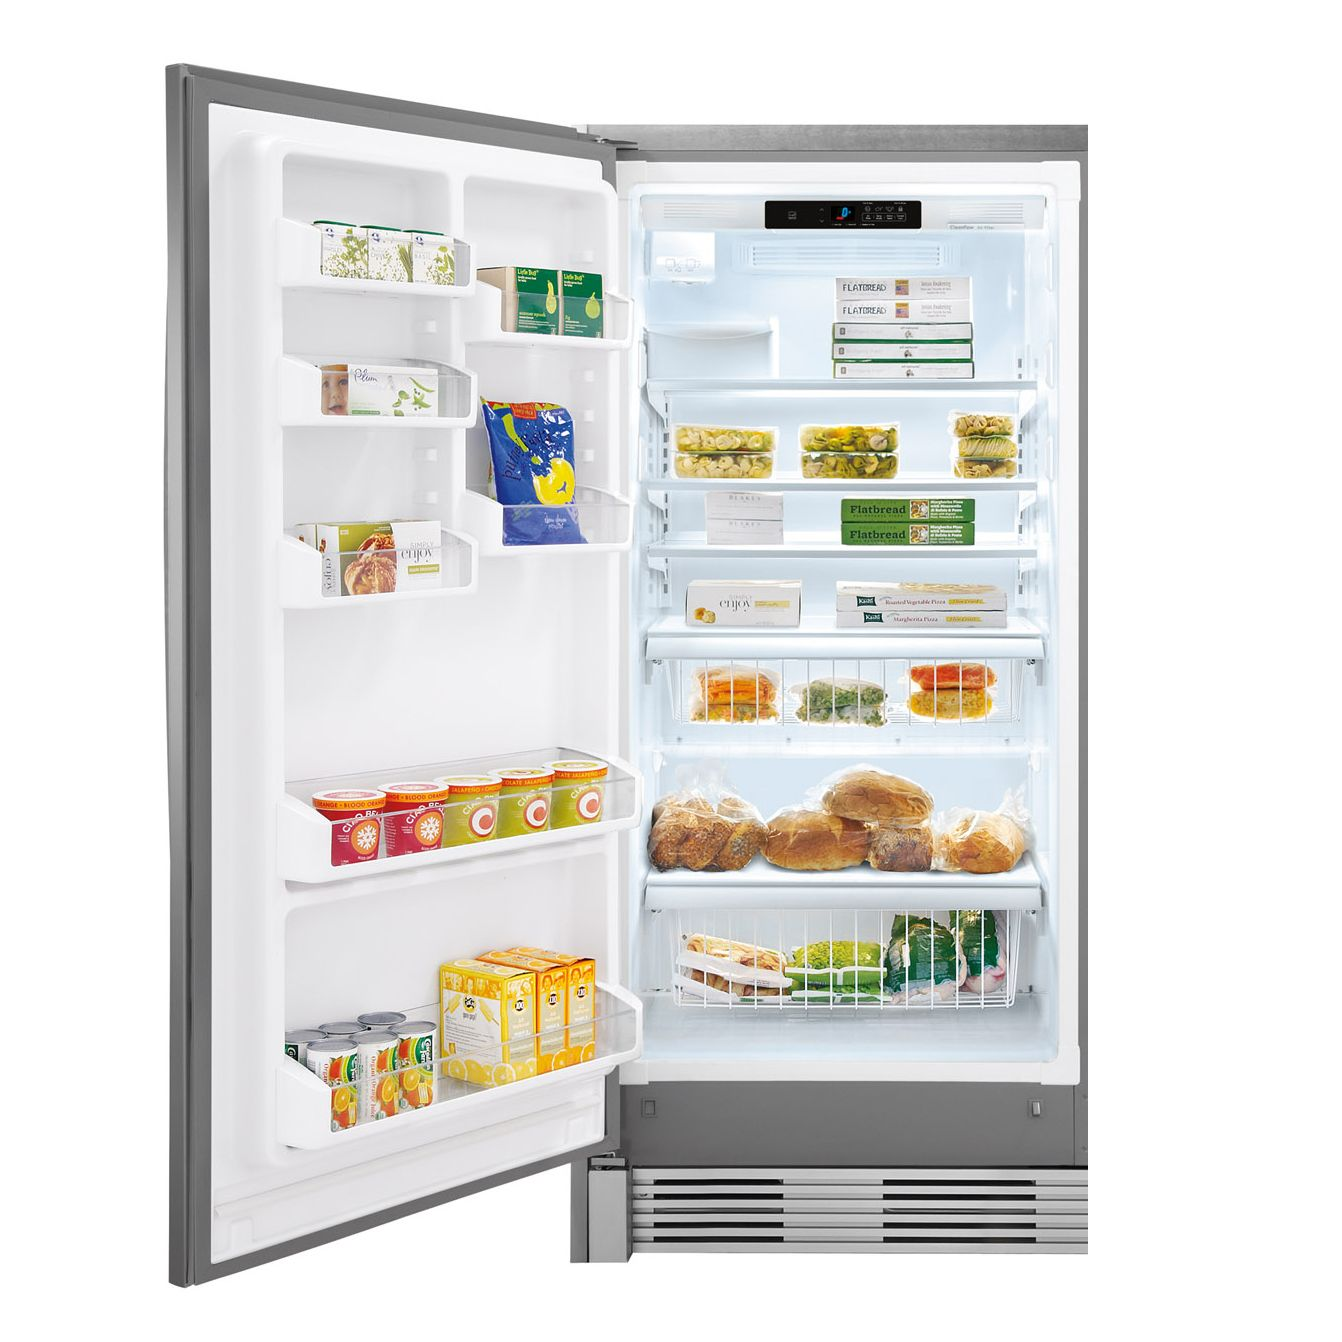 Kenmore Elite 18.6 cu. ft. Built-In All-Freezer - Stainless Steel